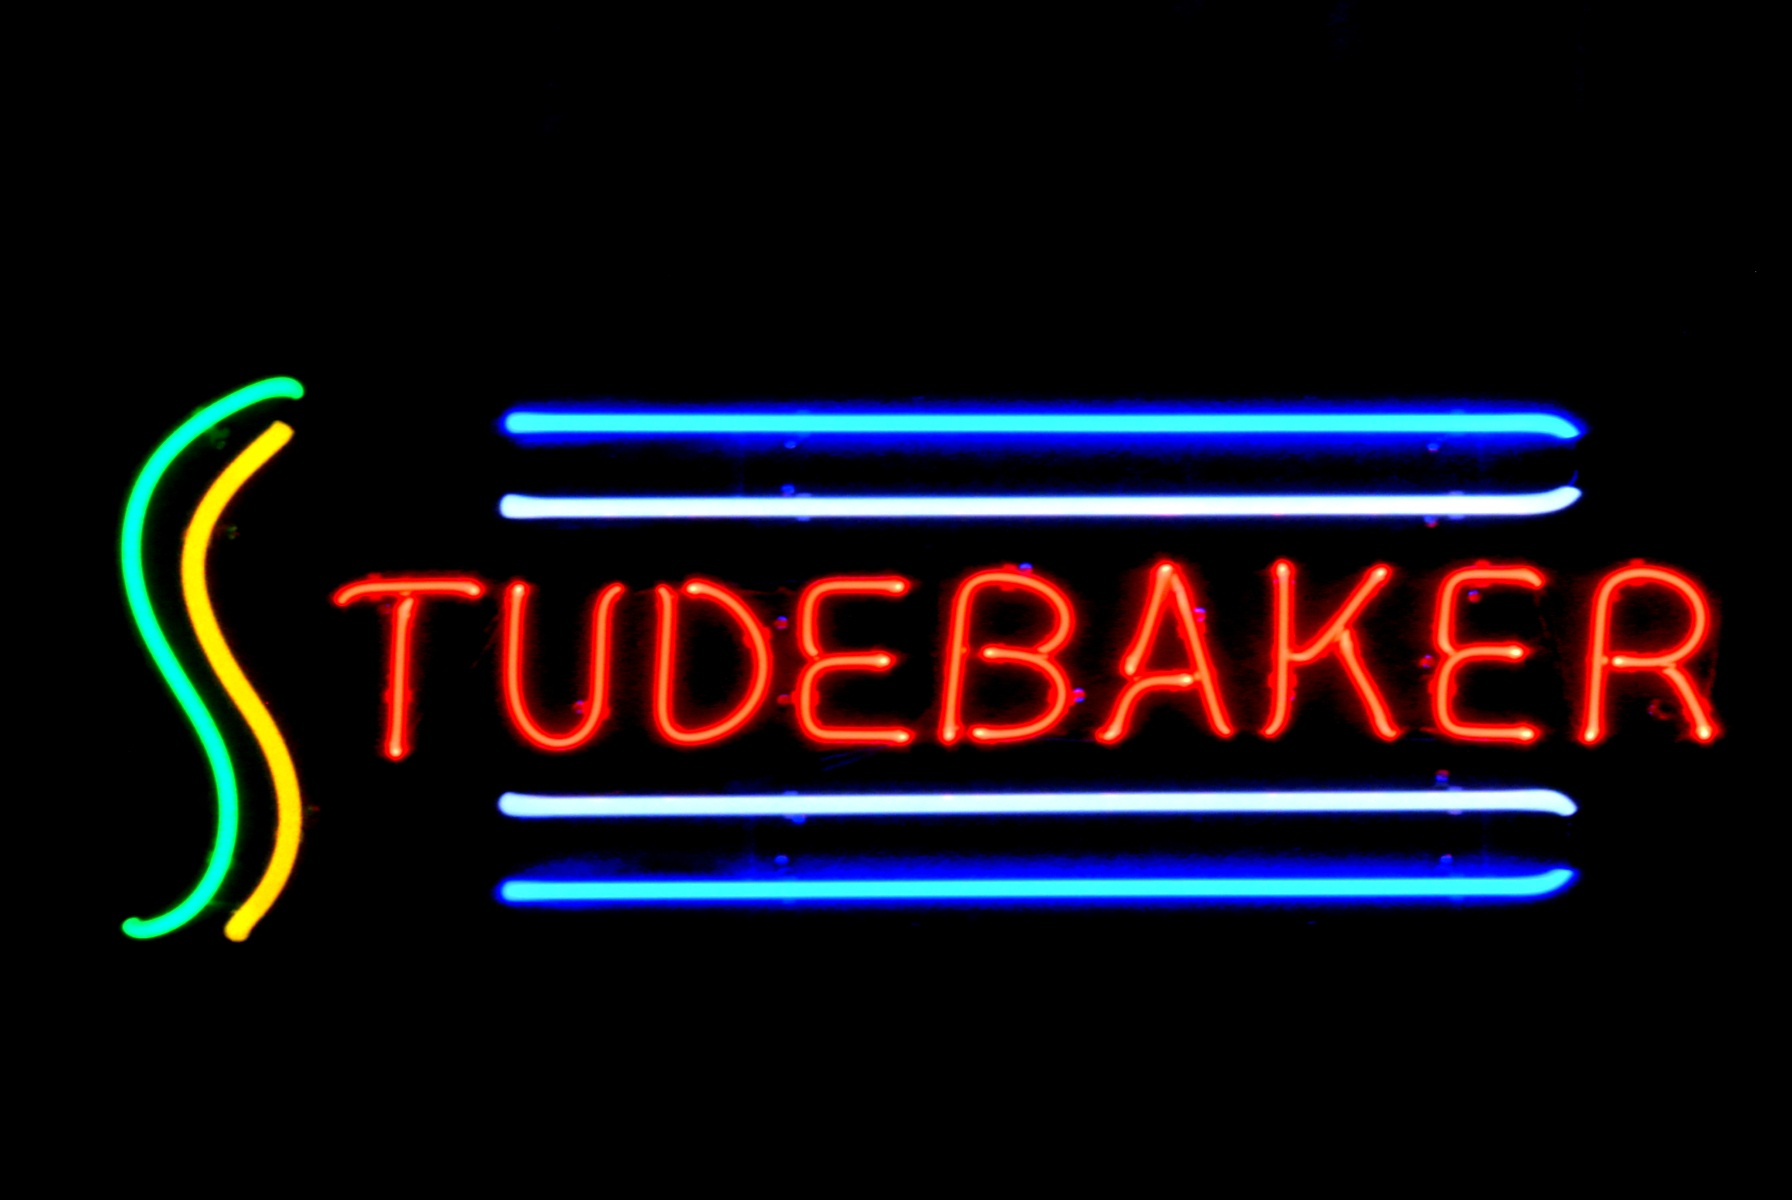 STUDEBAKER Car Dealer custom hand-blown neon signs by John Barton - BartonNeonMagic.com